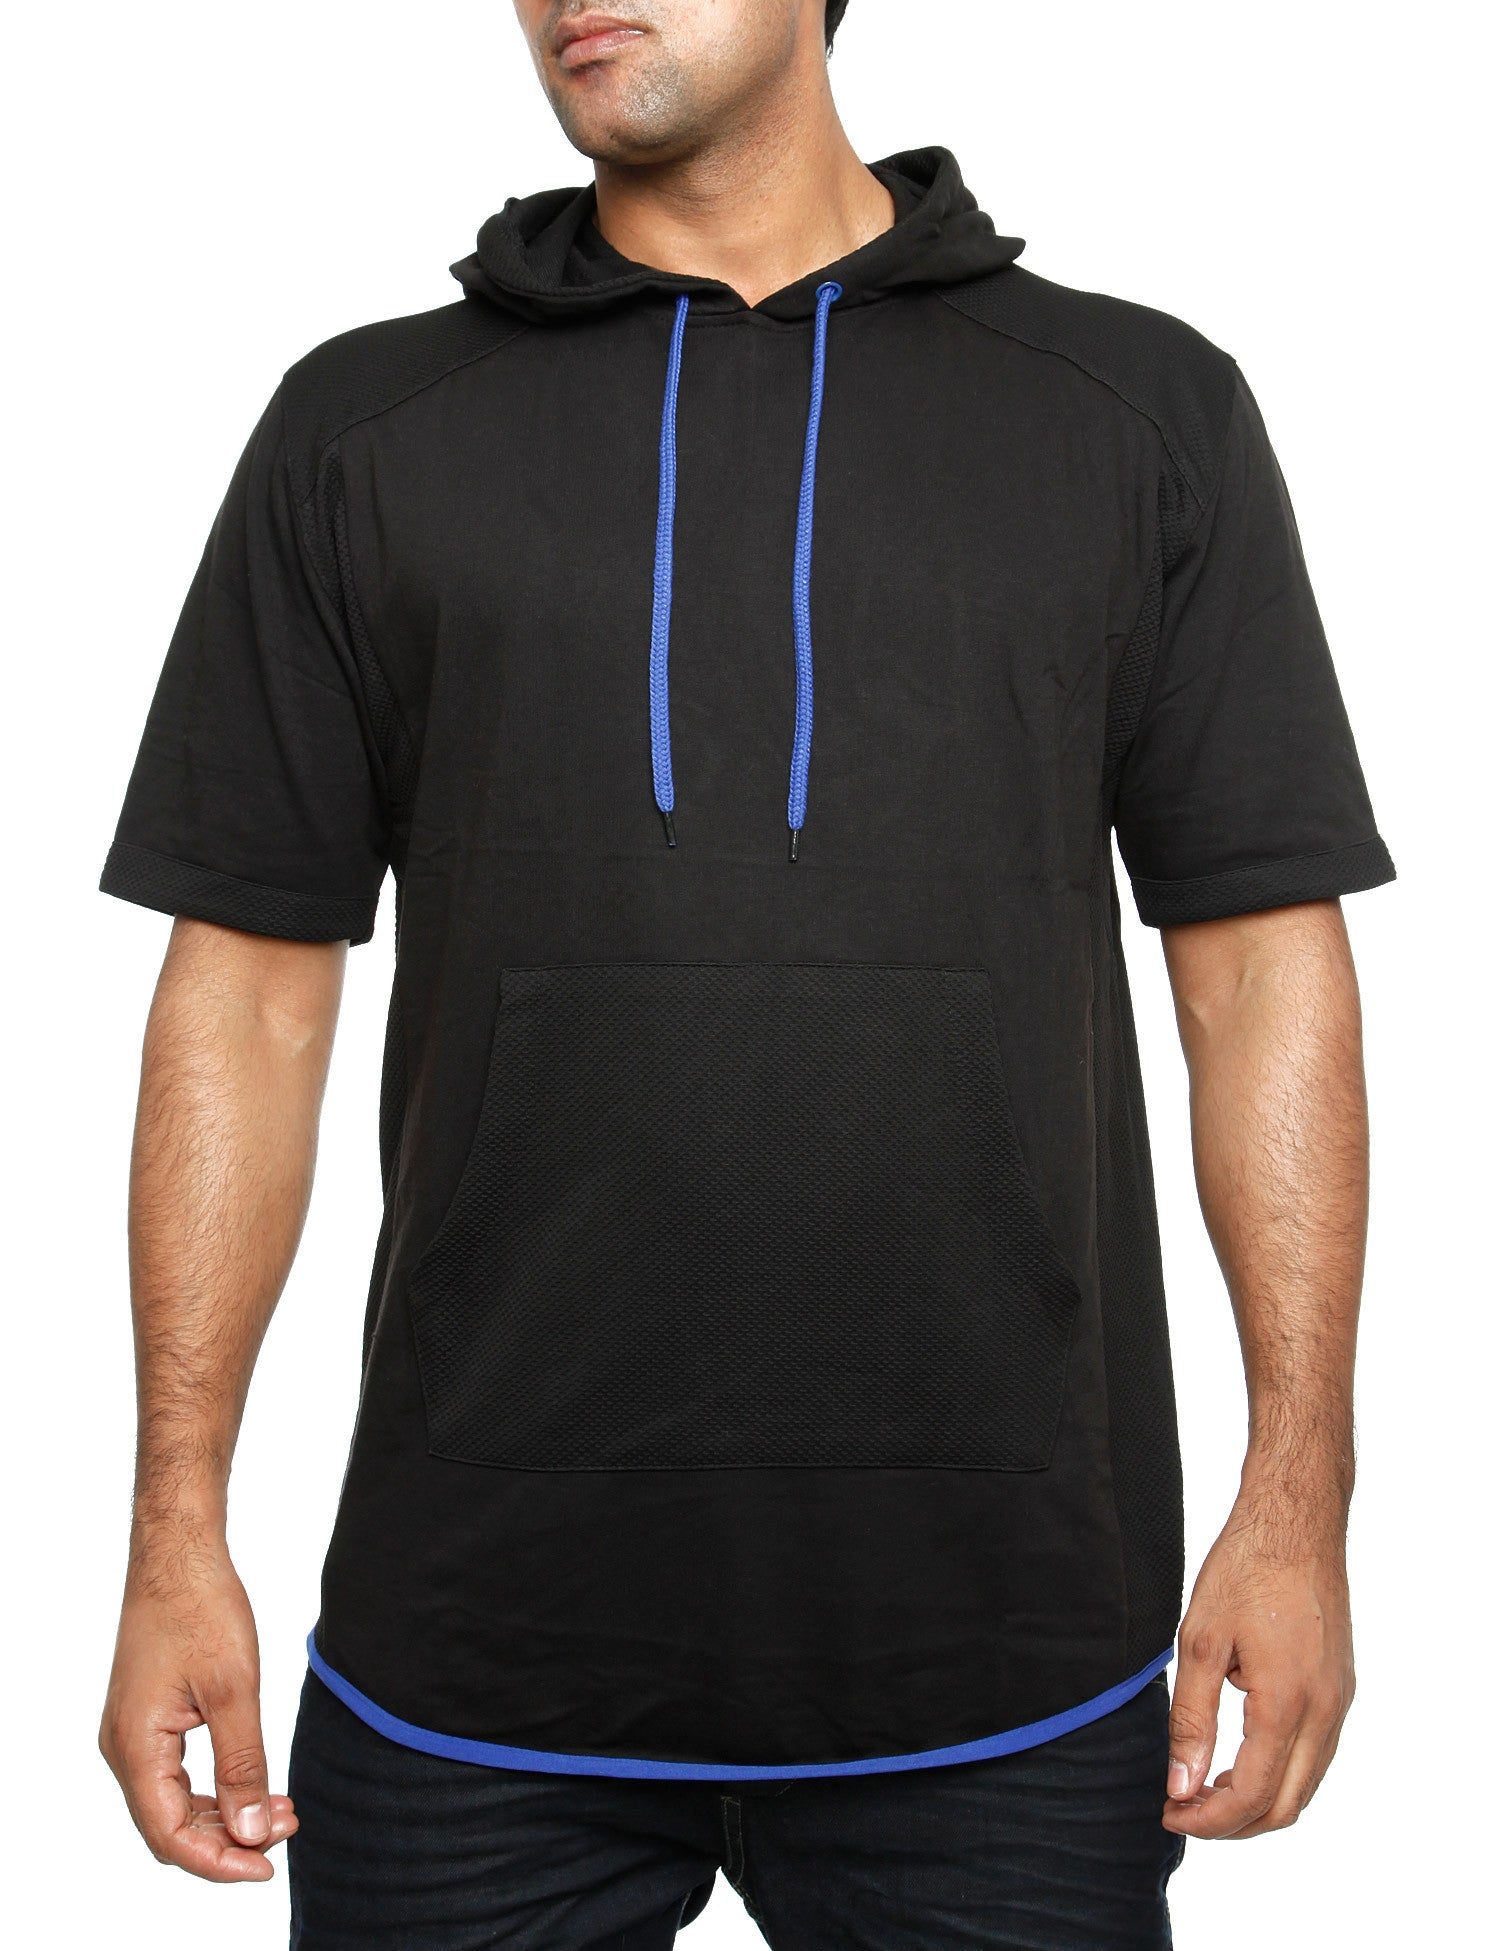 Royal Blue Hoody 24014H Black